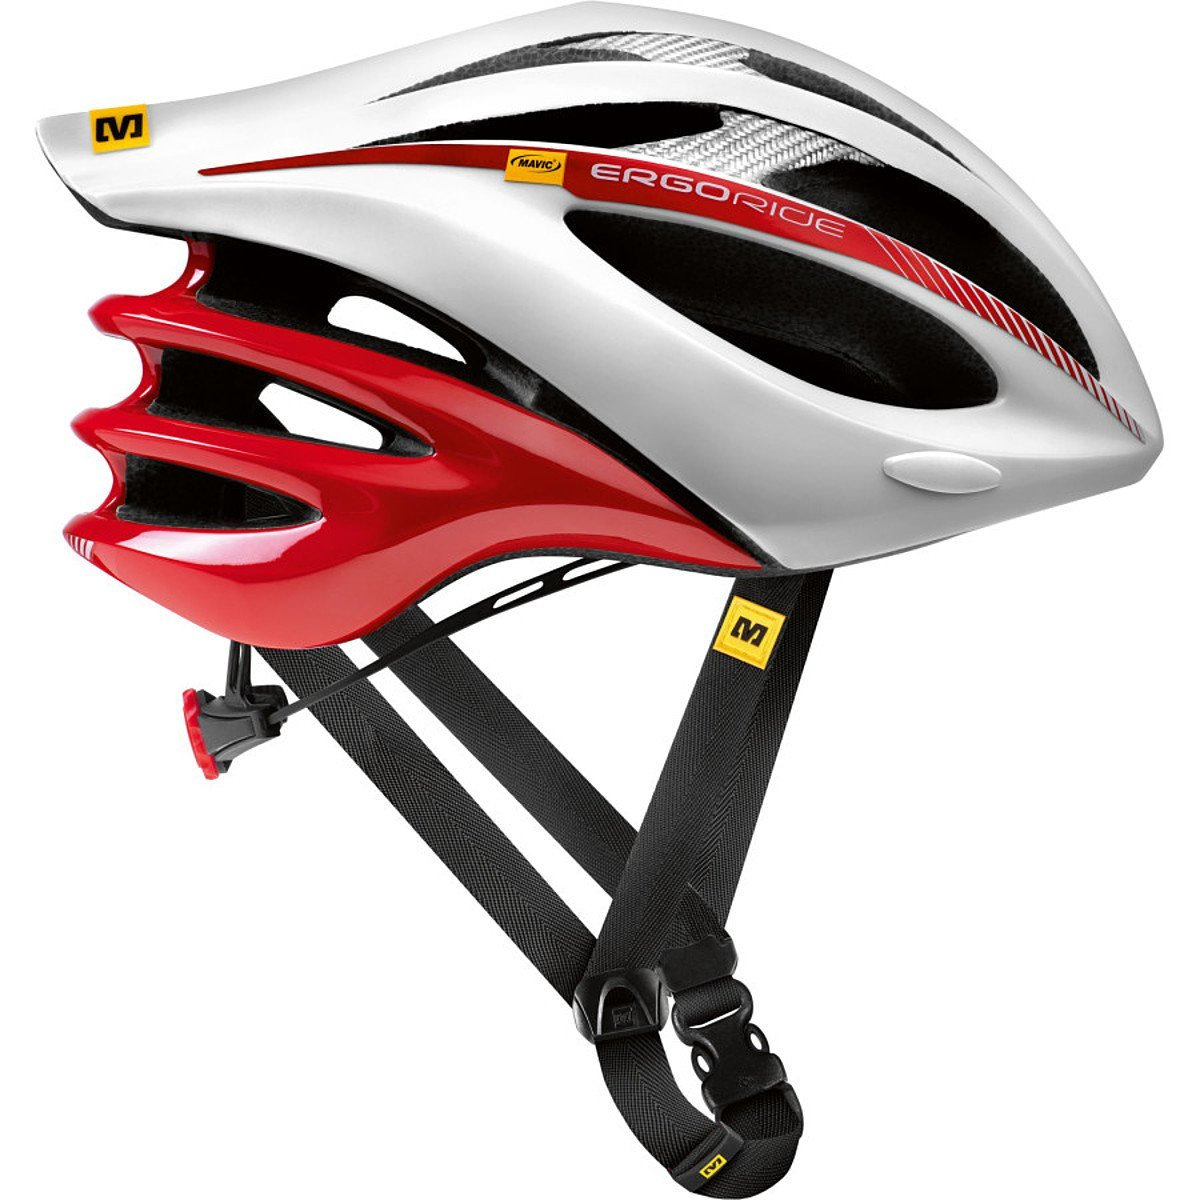 Colors of Mavic Bicycle Helmets